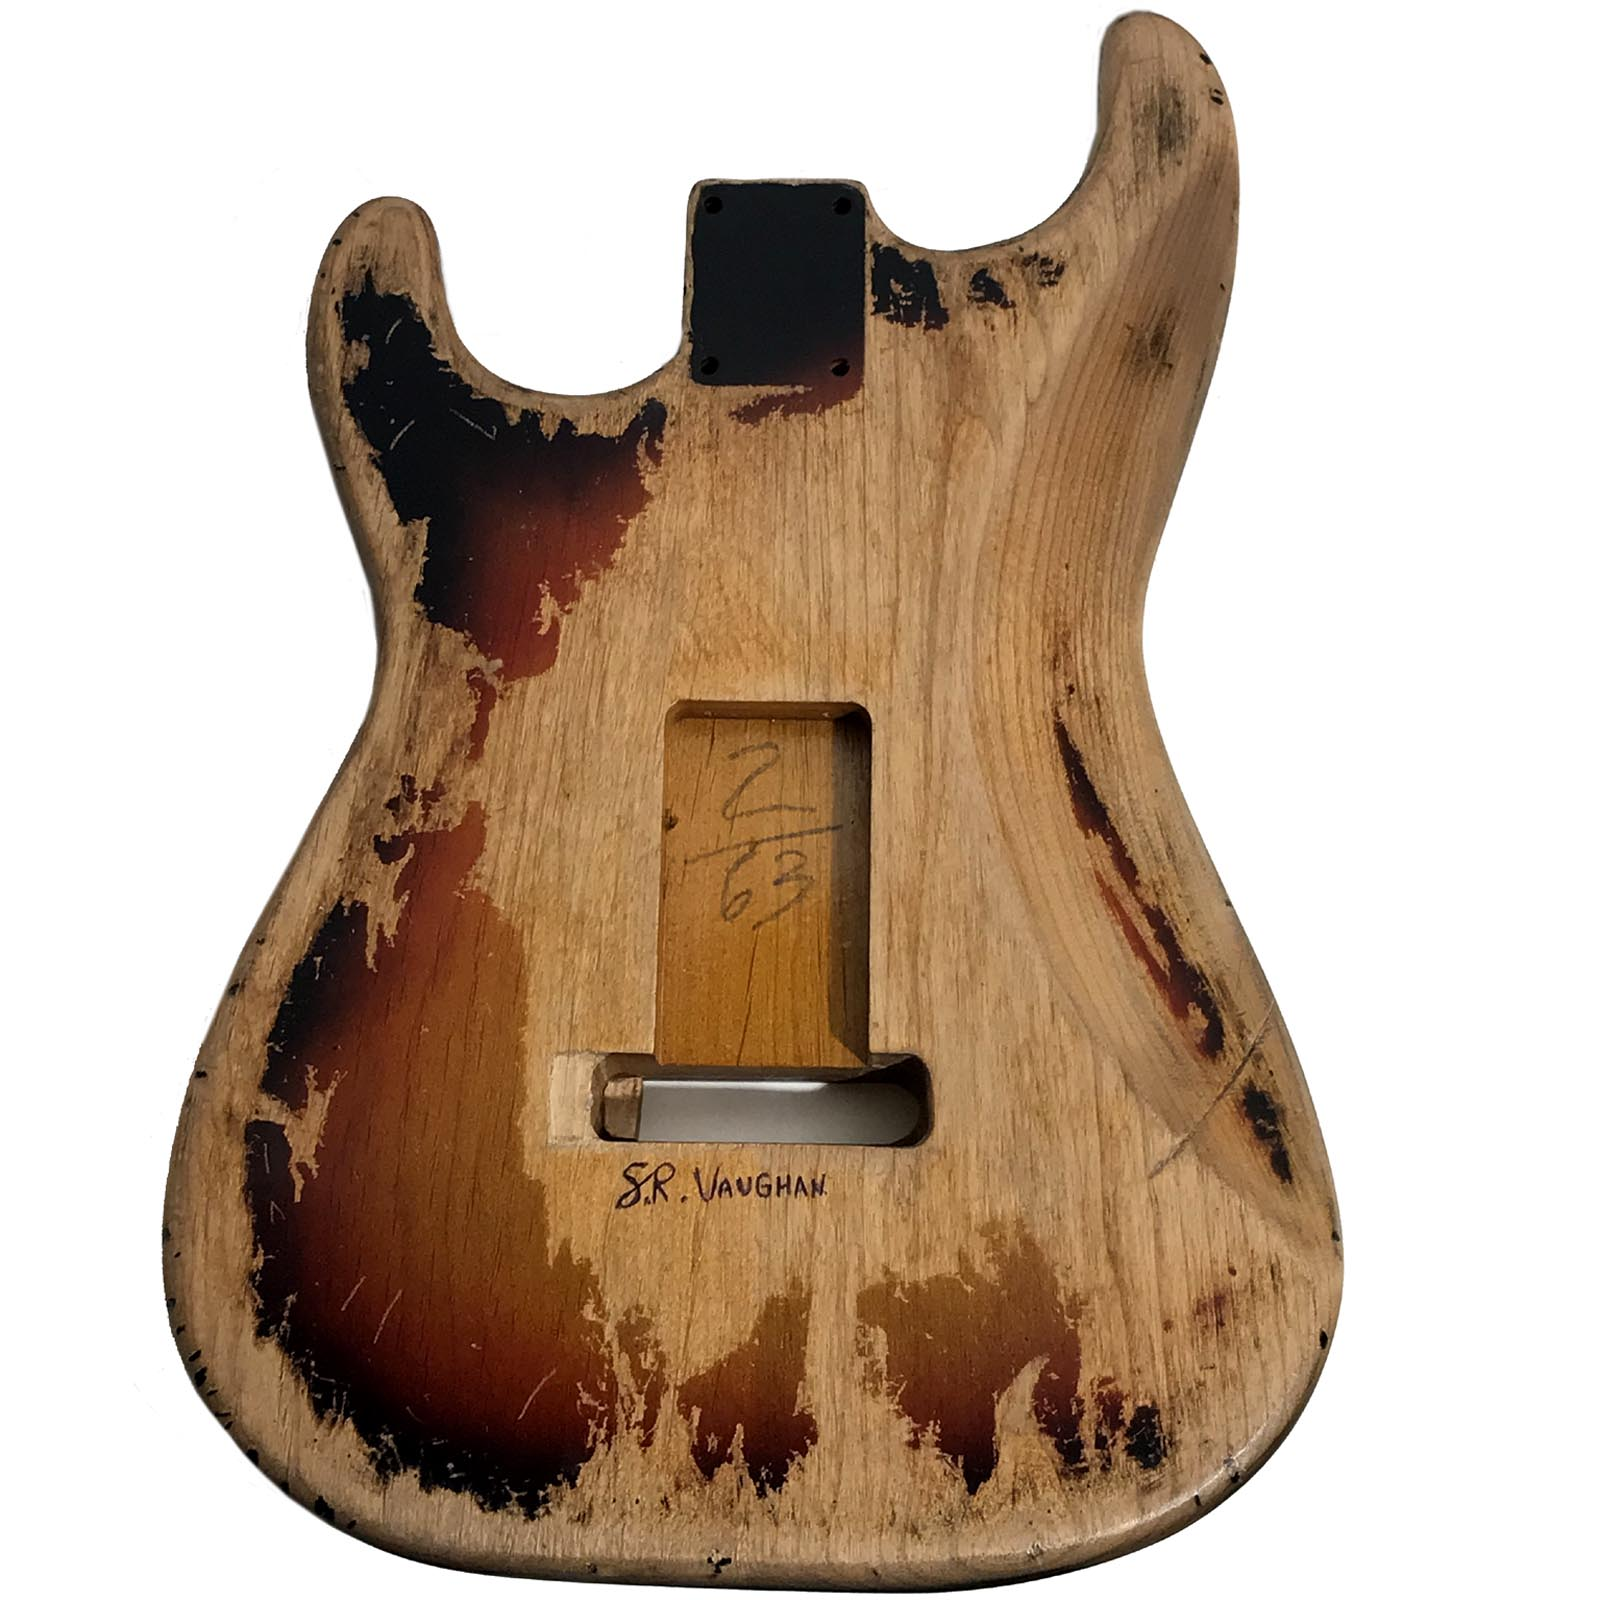 SRV Number One / First Wife Style Replica Stratocaster Replacement Alder Body